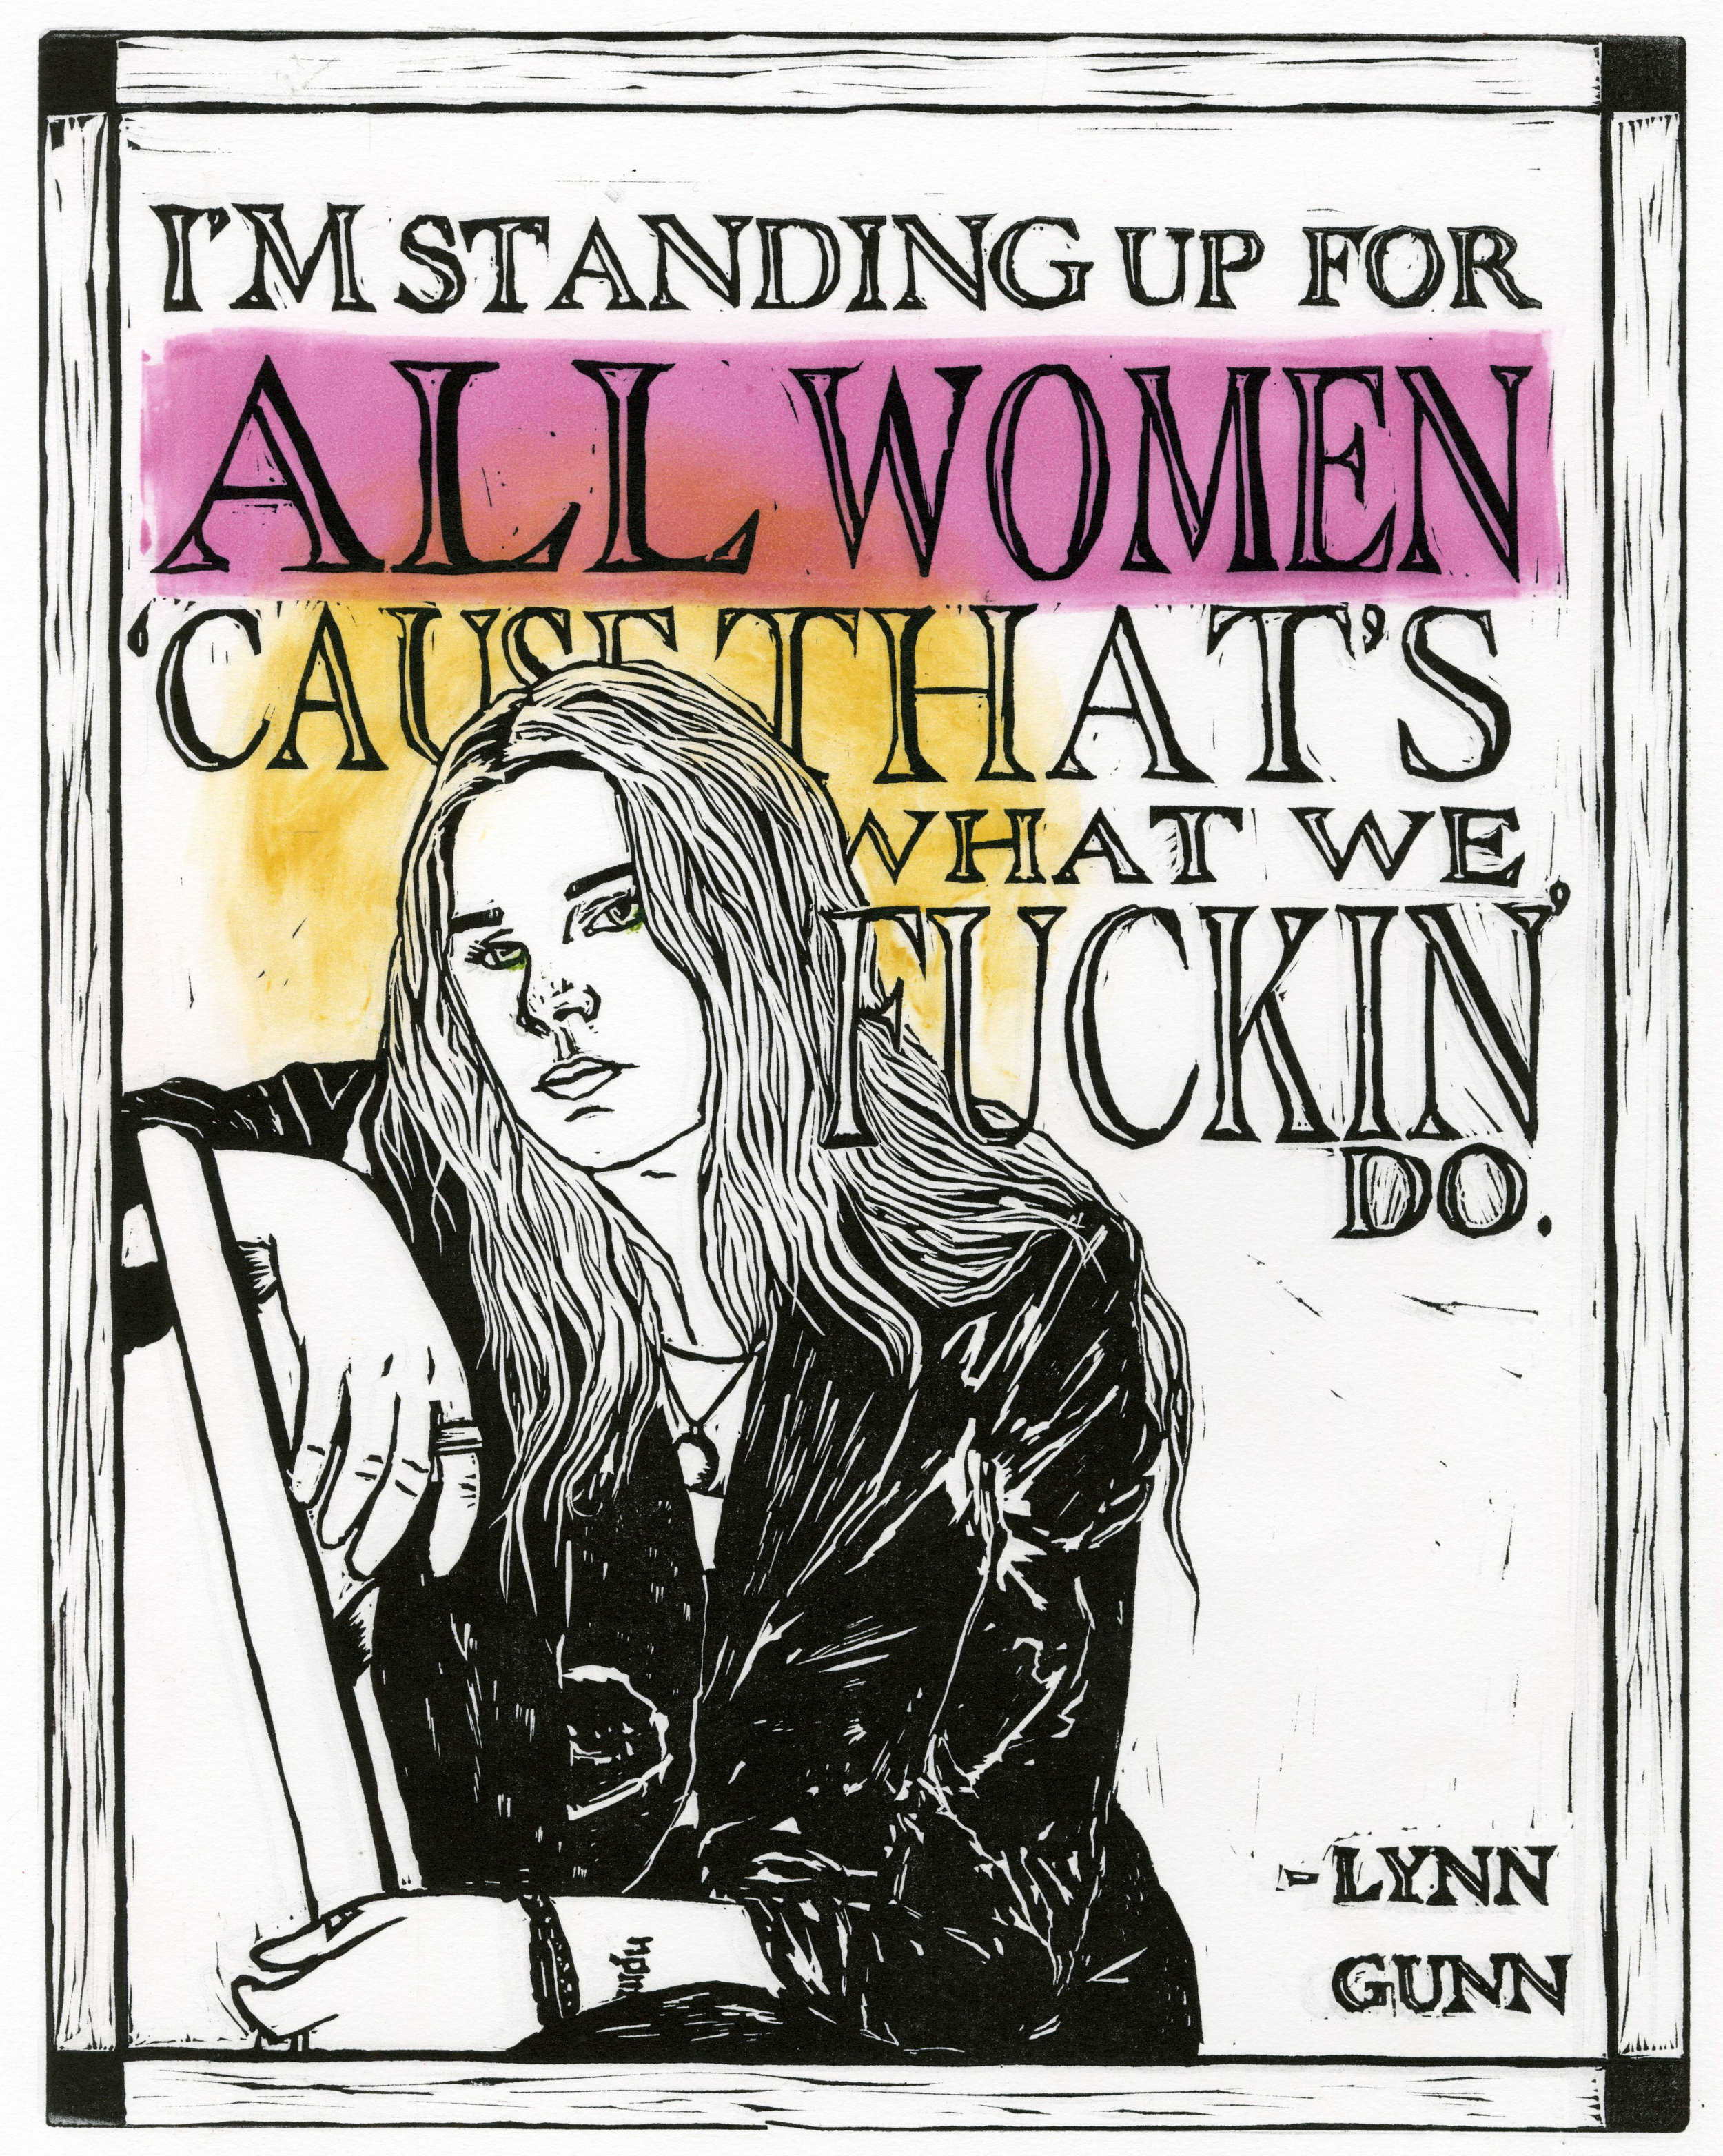 """ALL WOMEN , 2017  While at a Planned Parenthood event, musician Lynn Gunn was asked who she was standing up for. Her response, """"I'm standing up for all women 'cause that's what we fuckin' do."""""""